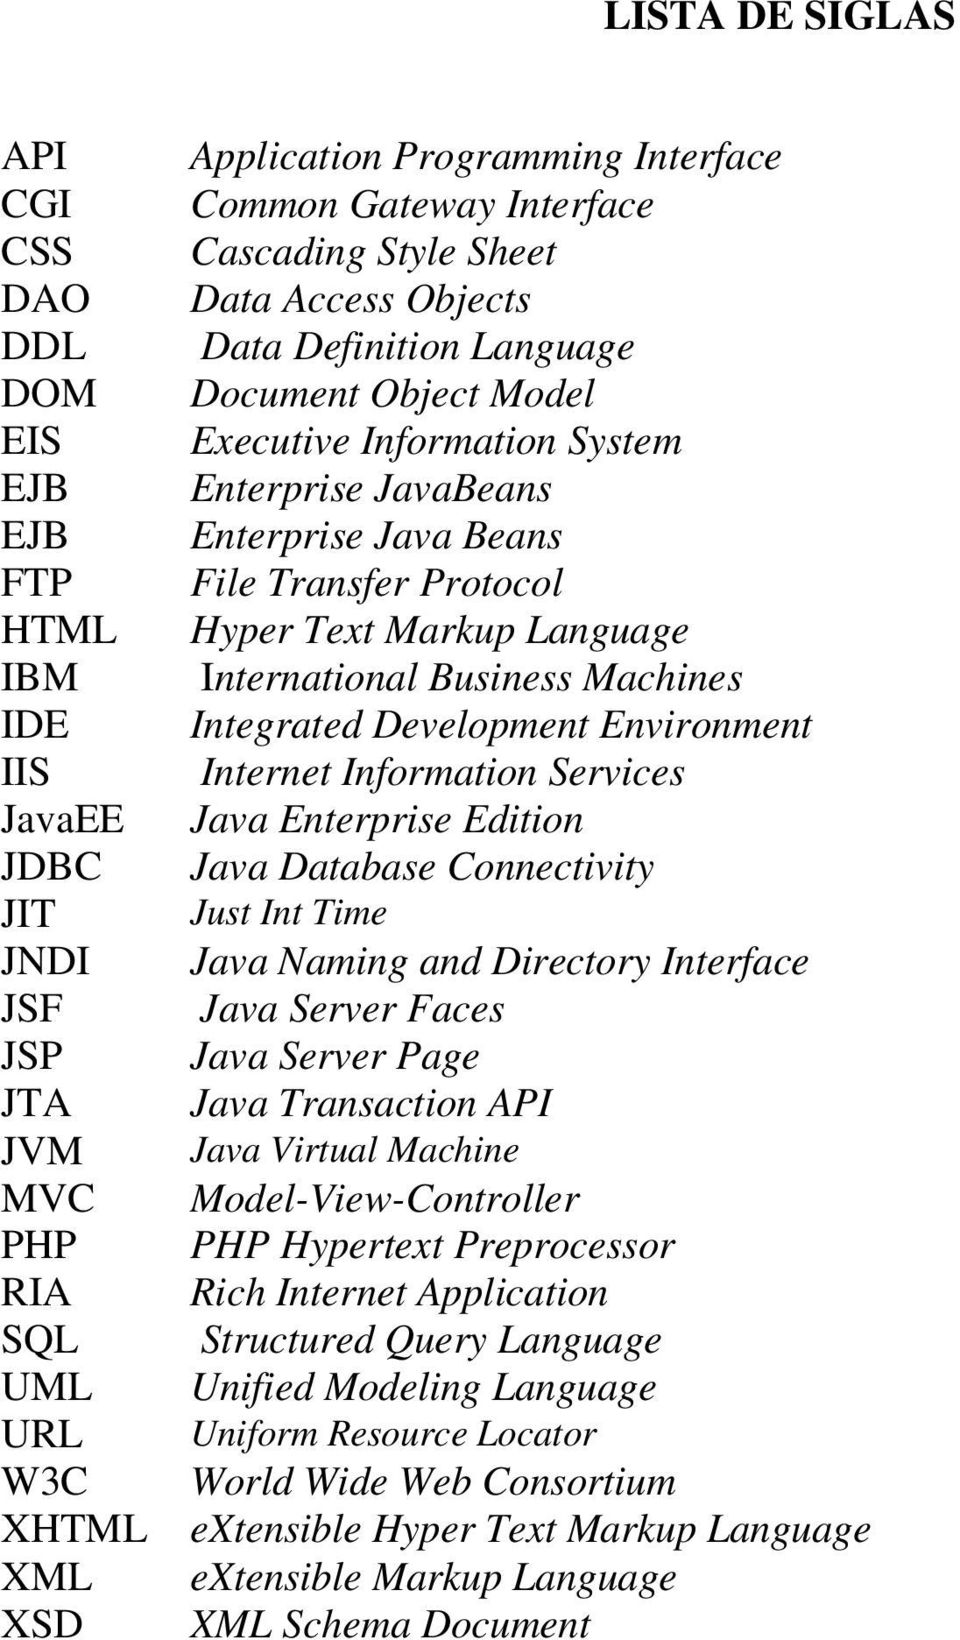 Protocol Hyper Text Markup Language International Business Machines Integrated Development Environment Internet Information Services Java Enterprise Edition Java Database Connectivity Just Int Time